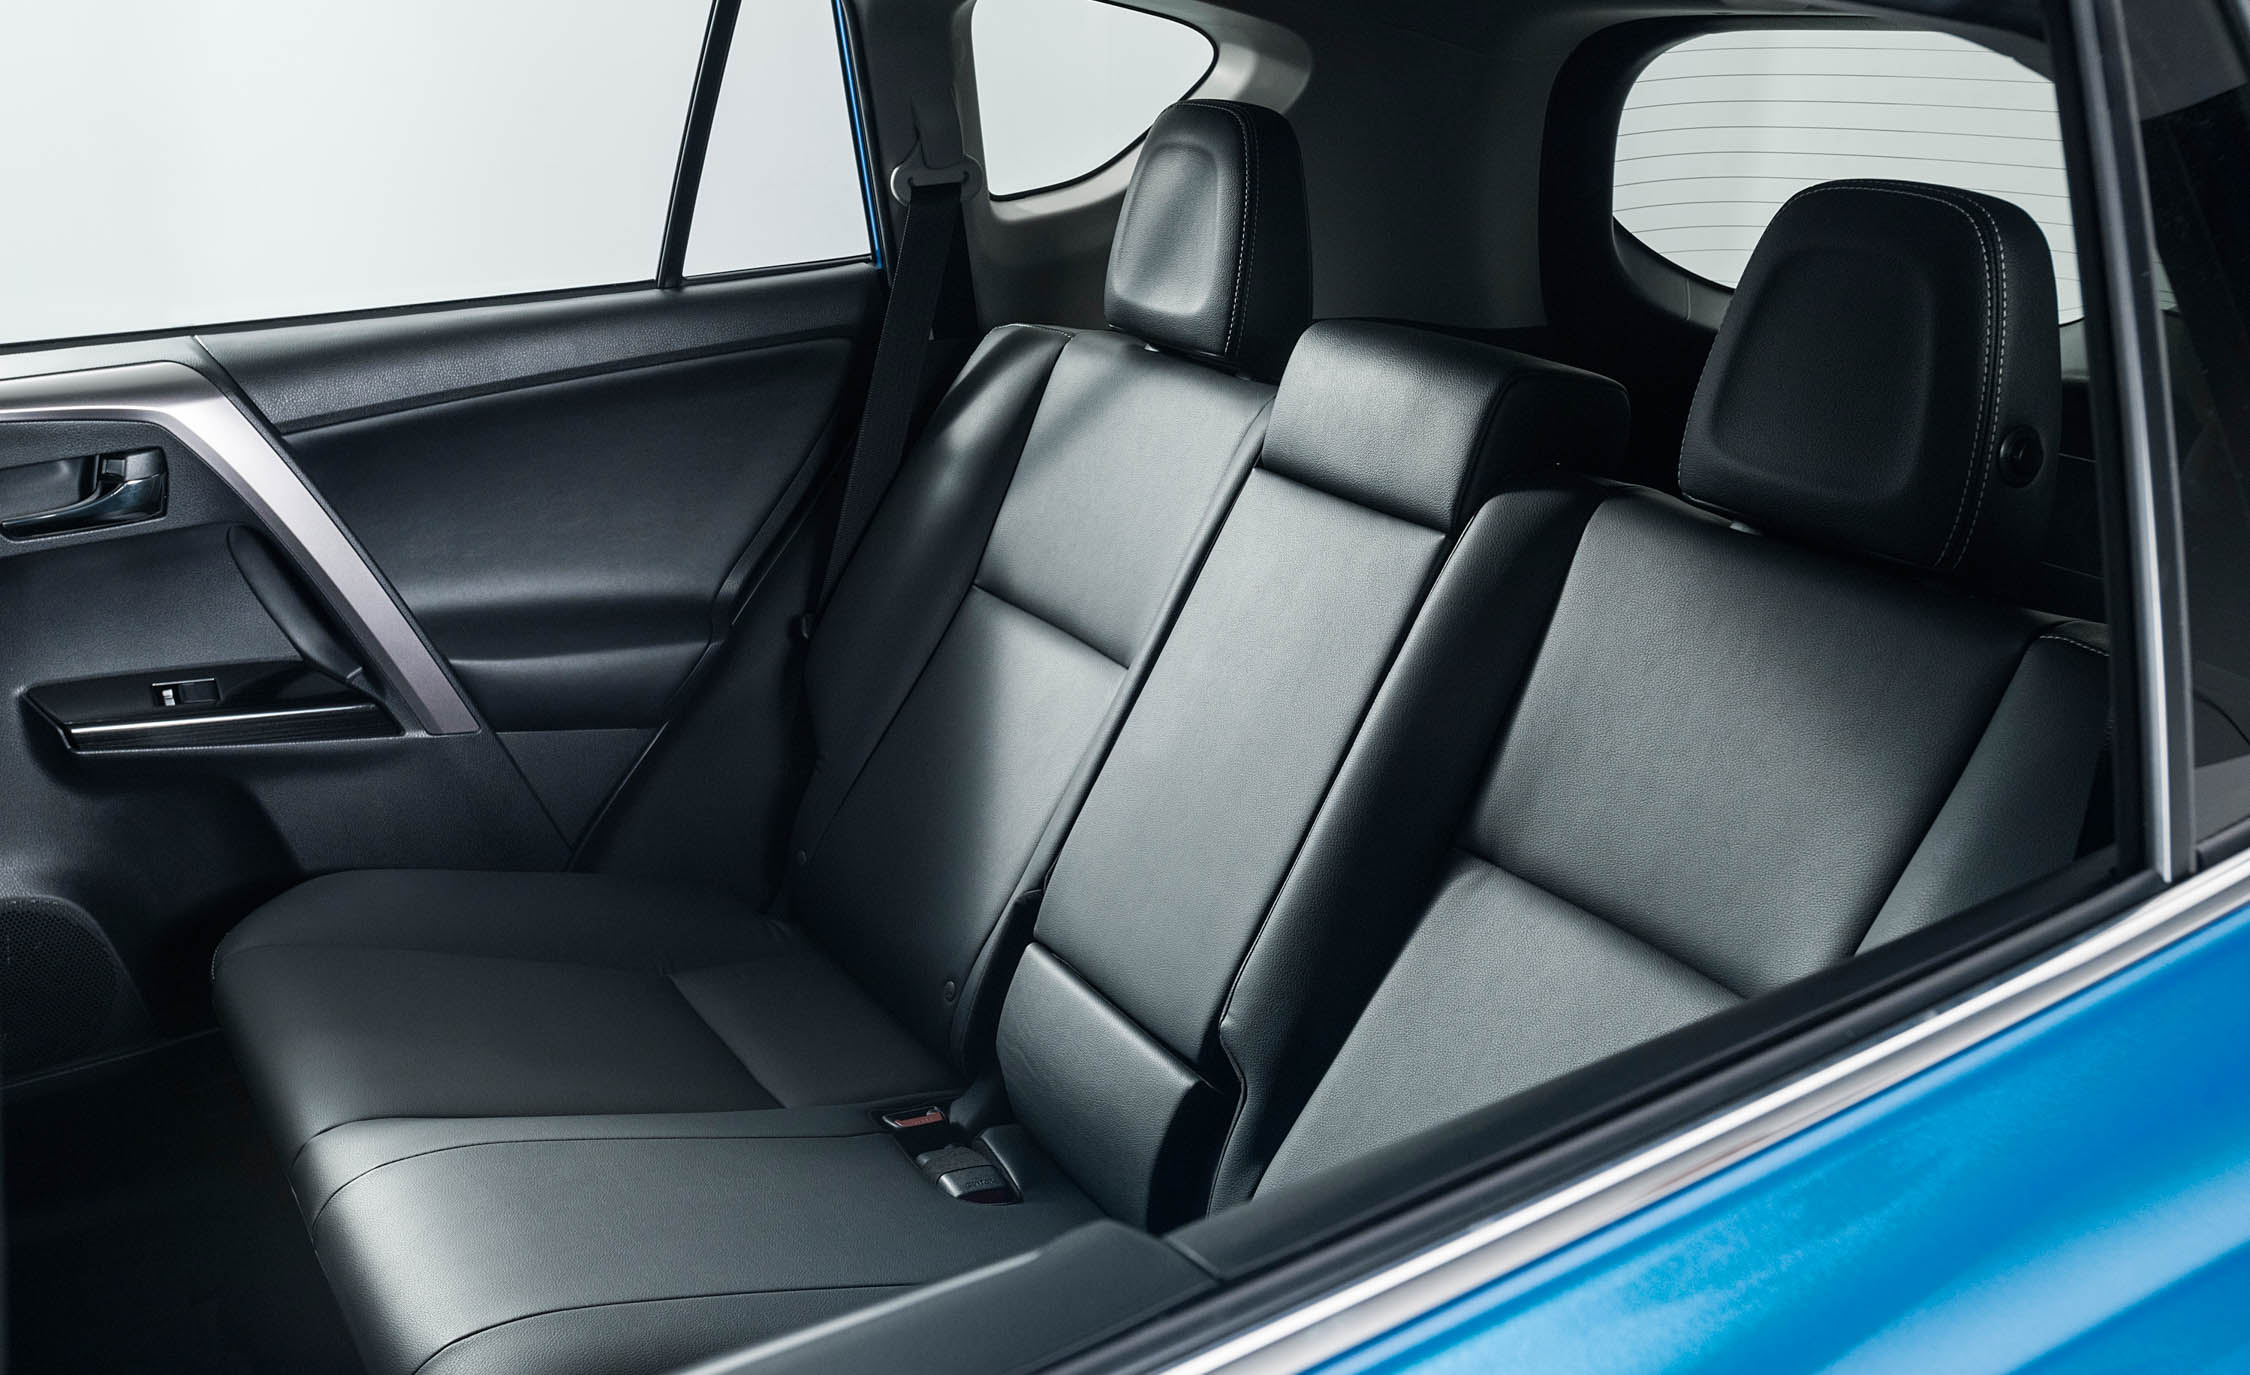 2016 Toyota Rav4 Hybrid Interior Rear Passenger Seats (Photo 20 of 26)